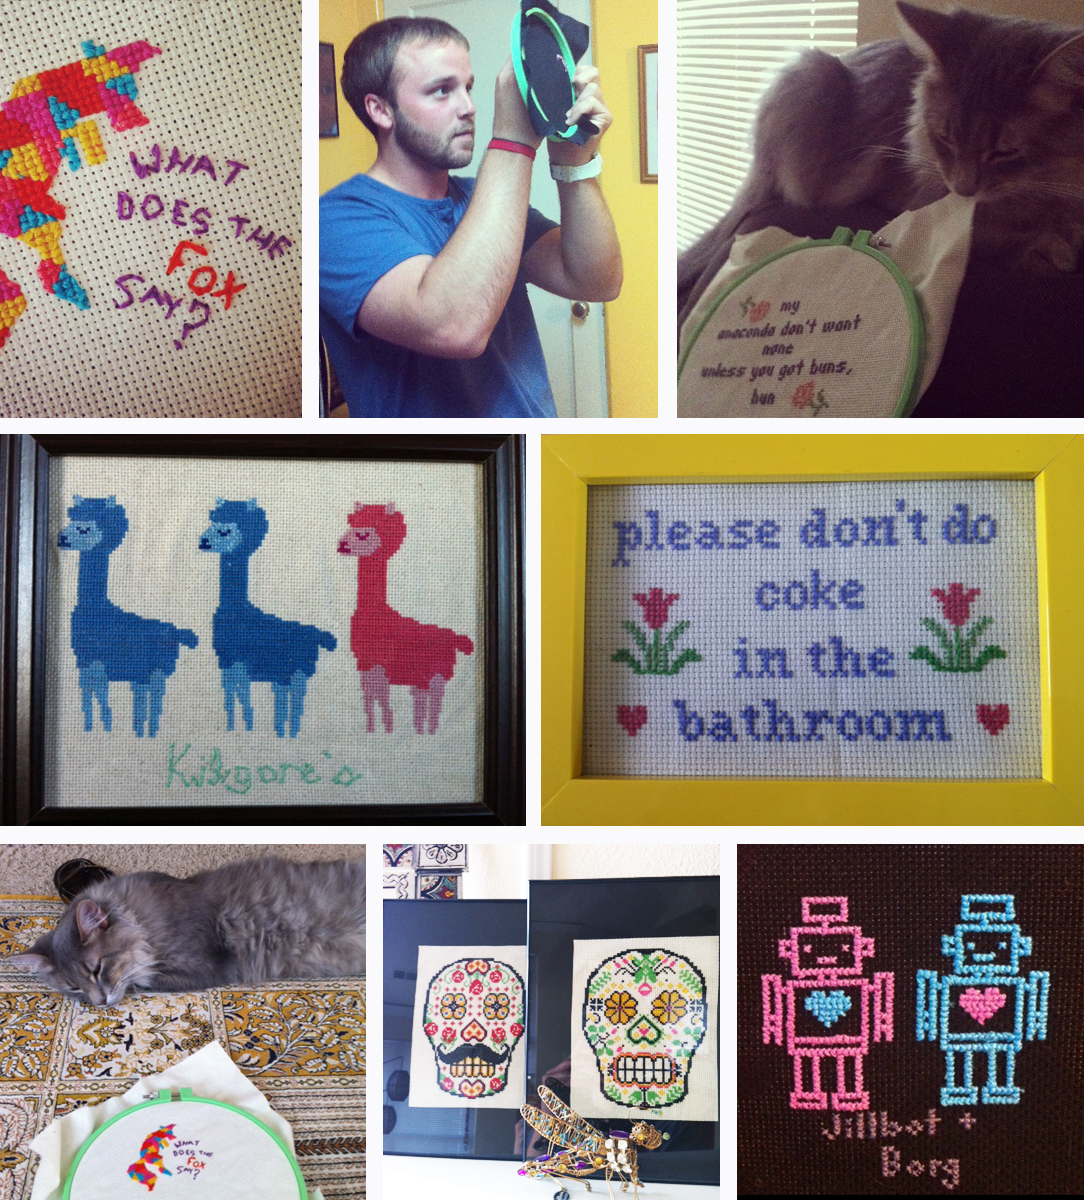 A few of Haley's pieces she has completed.... Also, check out her handsome cat Mishka! (Clearly a cross stitch fan)